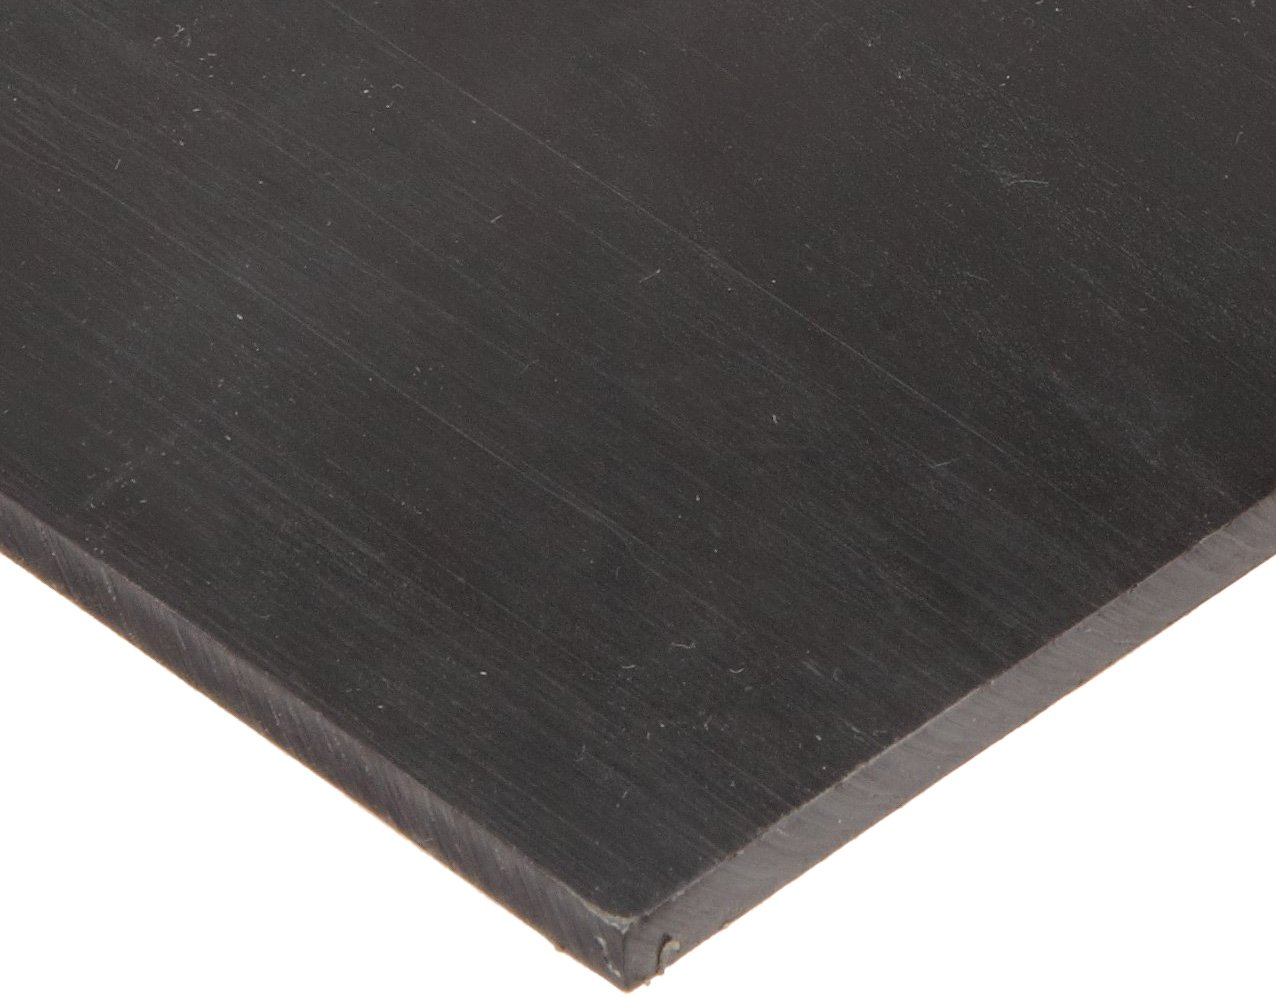 Smooth ASTM D-470 1 Width 20A Durometer Black 1 Thick Polyurethane Sheet 12 Length No Backing